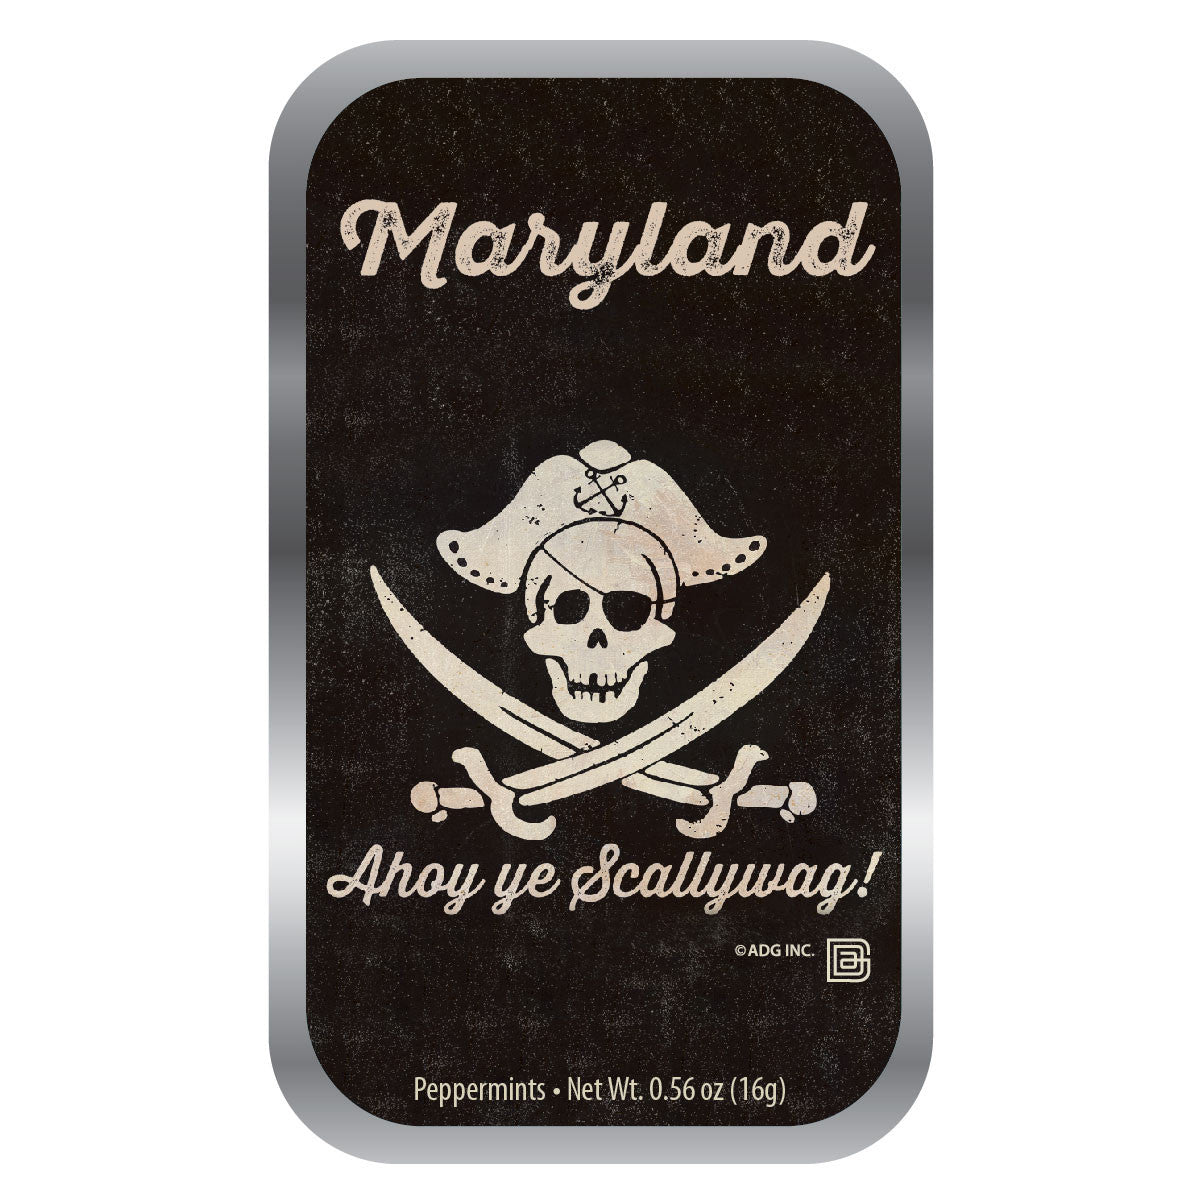 Pirate Flag Maryland - 1651A